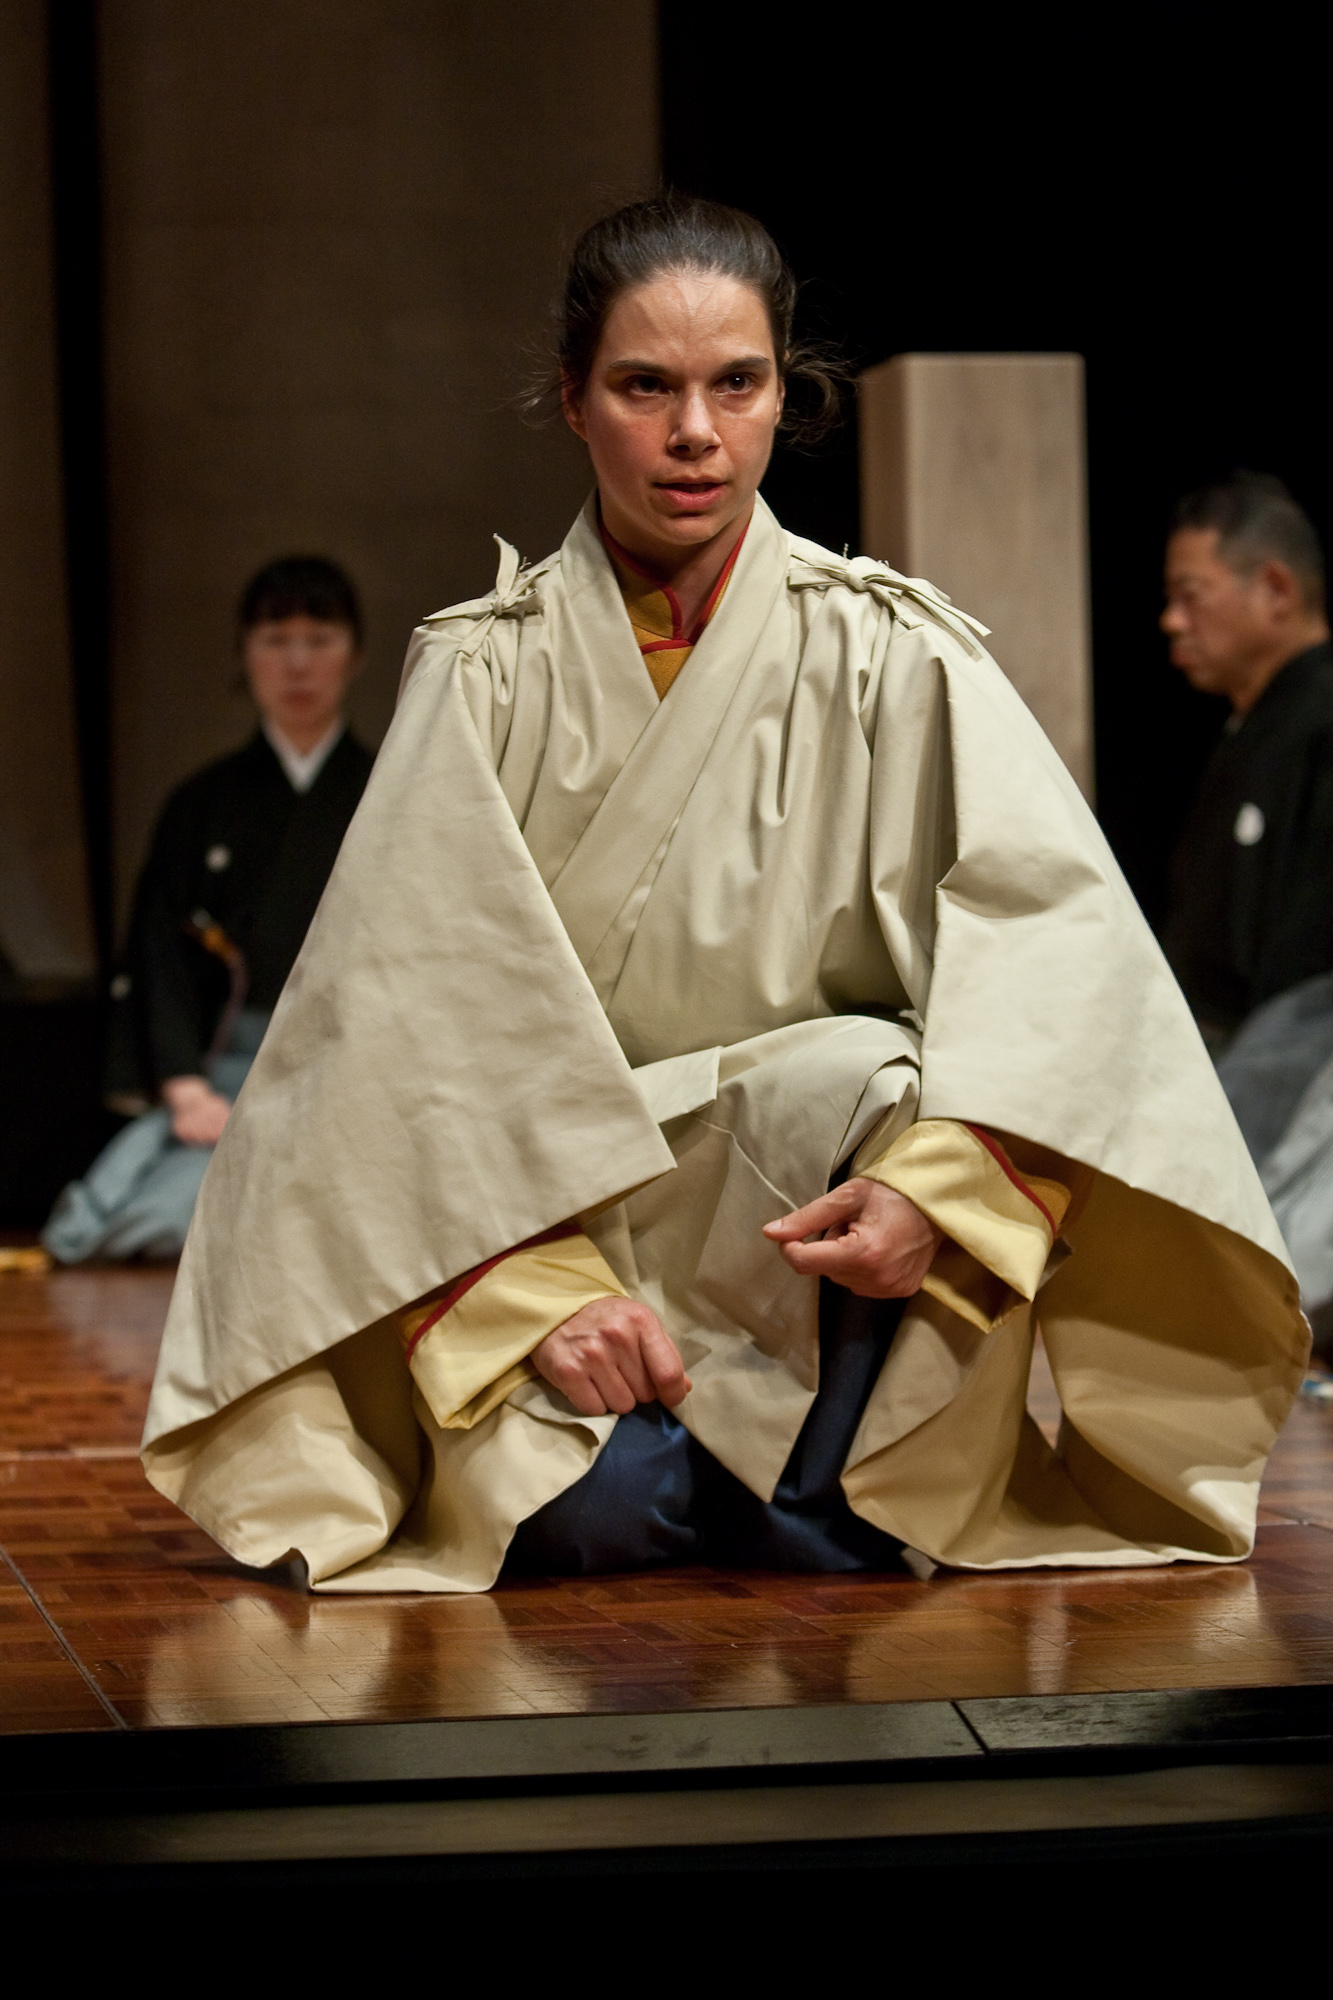 Jubilith Moore - Performing the role of The Traveller (Waki) in Pagoda in 2009, Southbank Centre, London; then Dublin, Oxford & Paris. Also, in 2011 at the National Noh Theatre, Tokyo, Kongoh Theatre, Kyoto, the National Centre of the Performing Arts, Beijing and the Hong Kong Academy of the Performing Arts, Hong Kong.